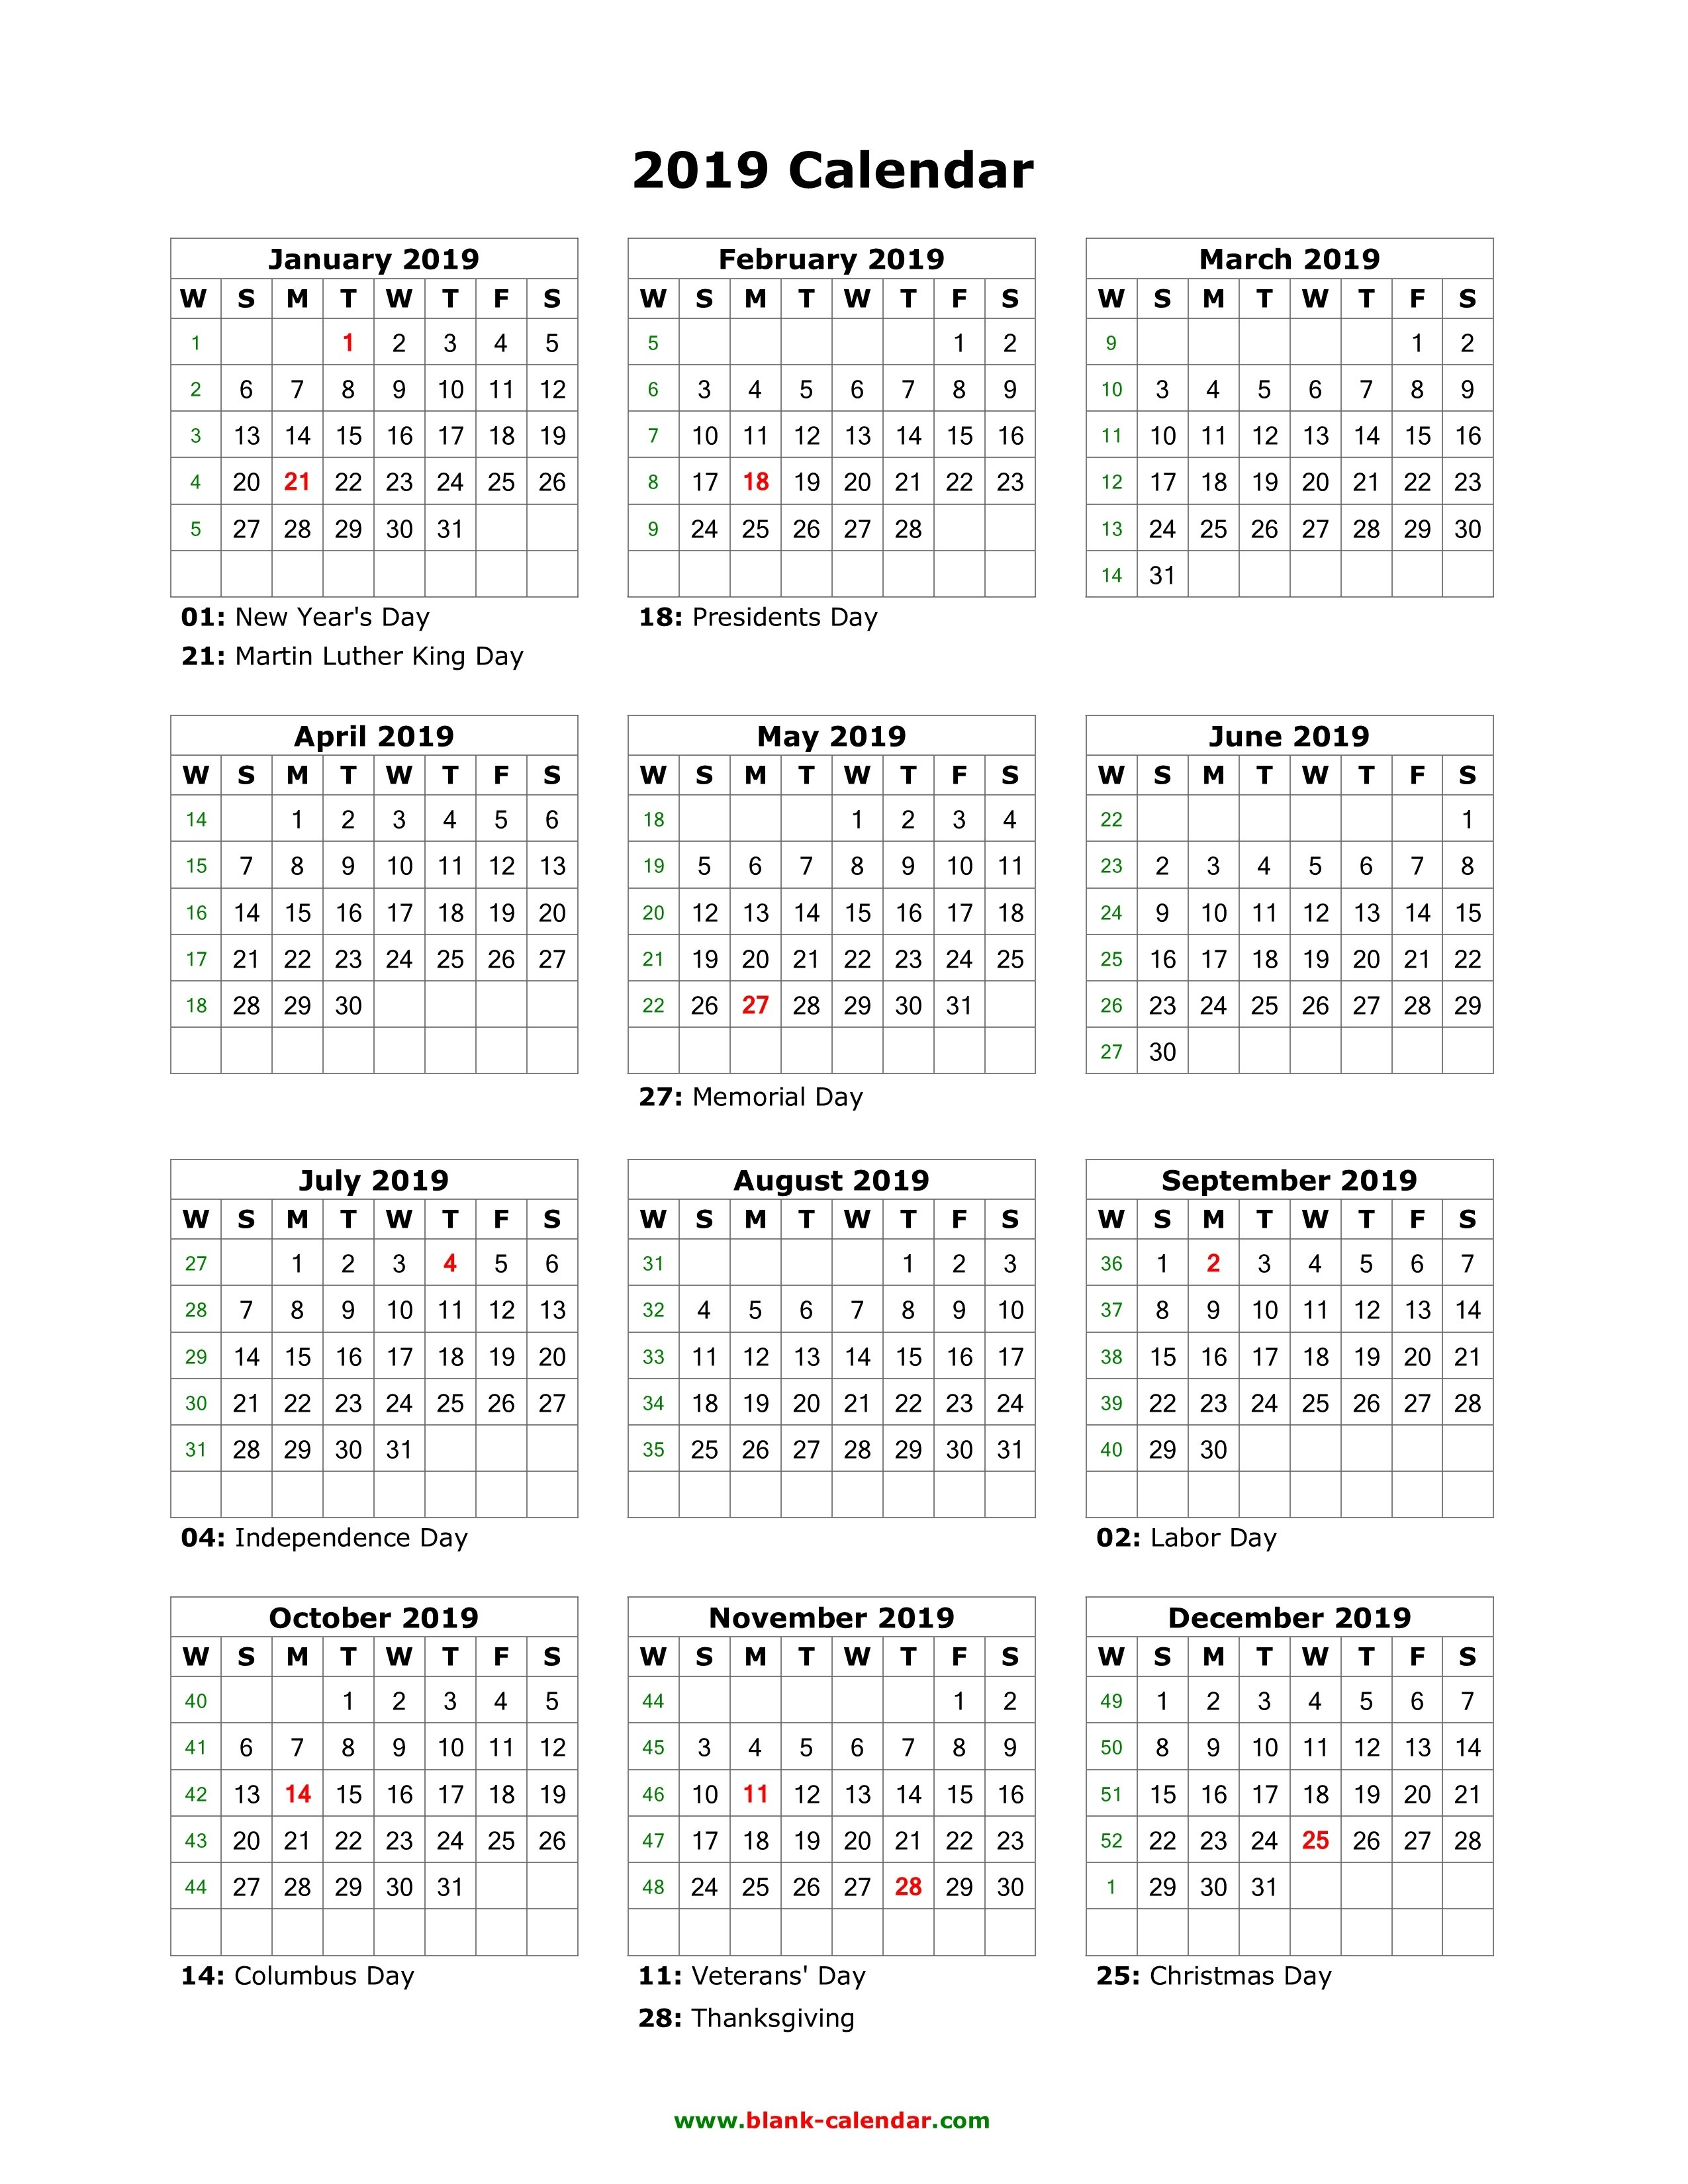 Download Blank Calendar 2019 With Us Holidays (12 Months On One Page Calendar 2019 With All Holidays